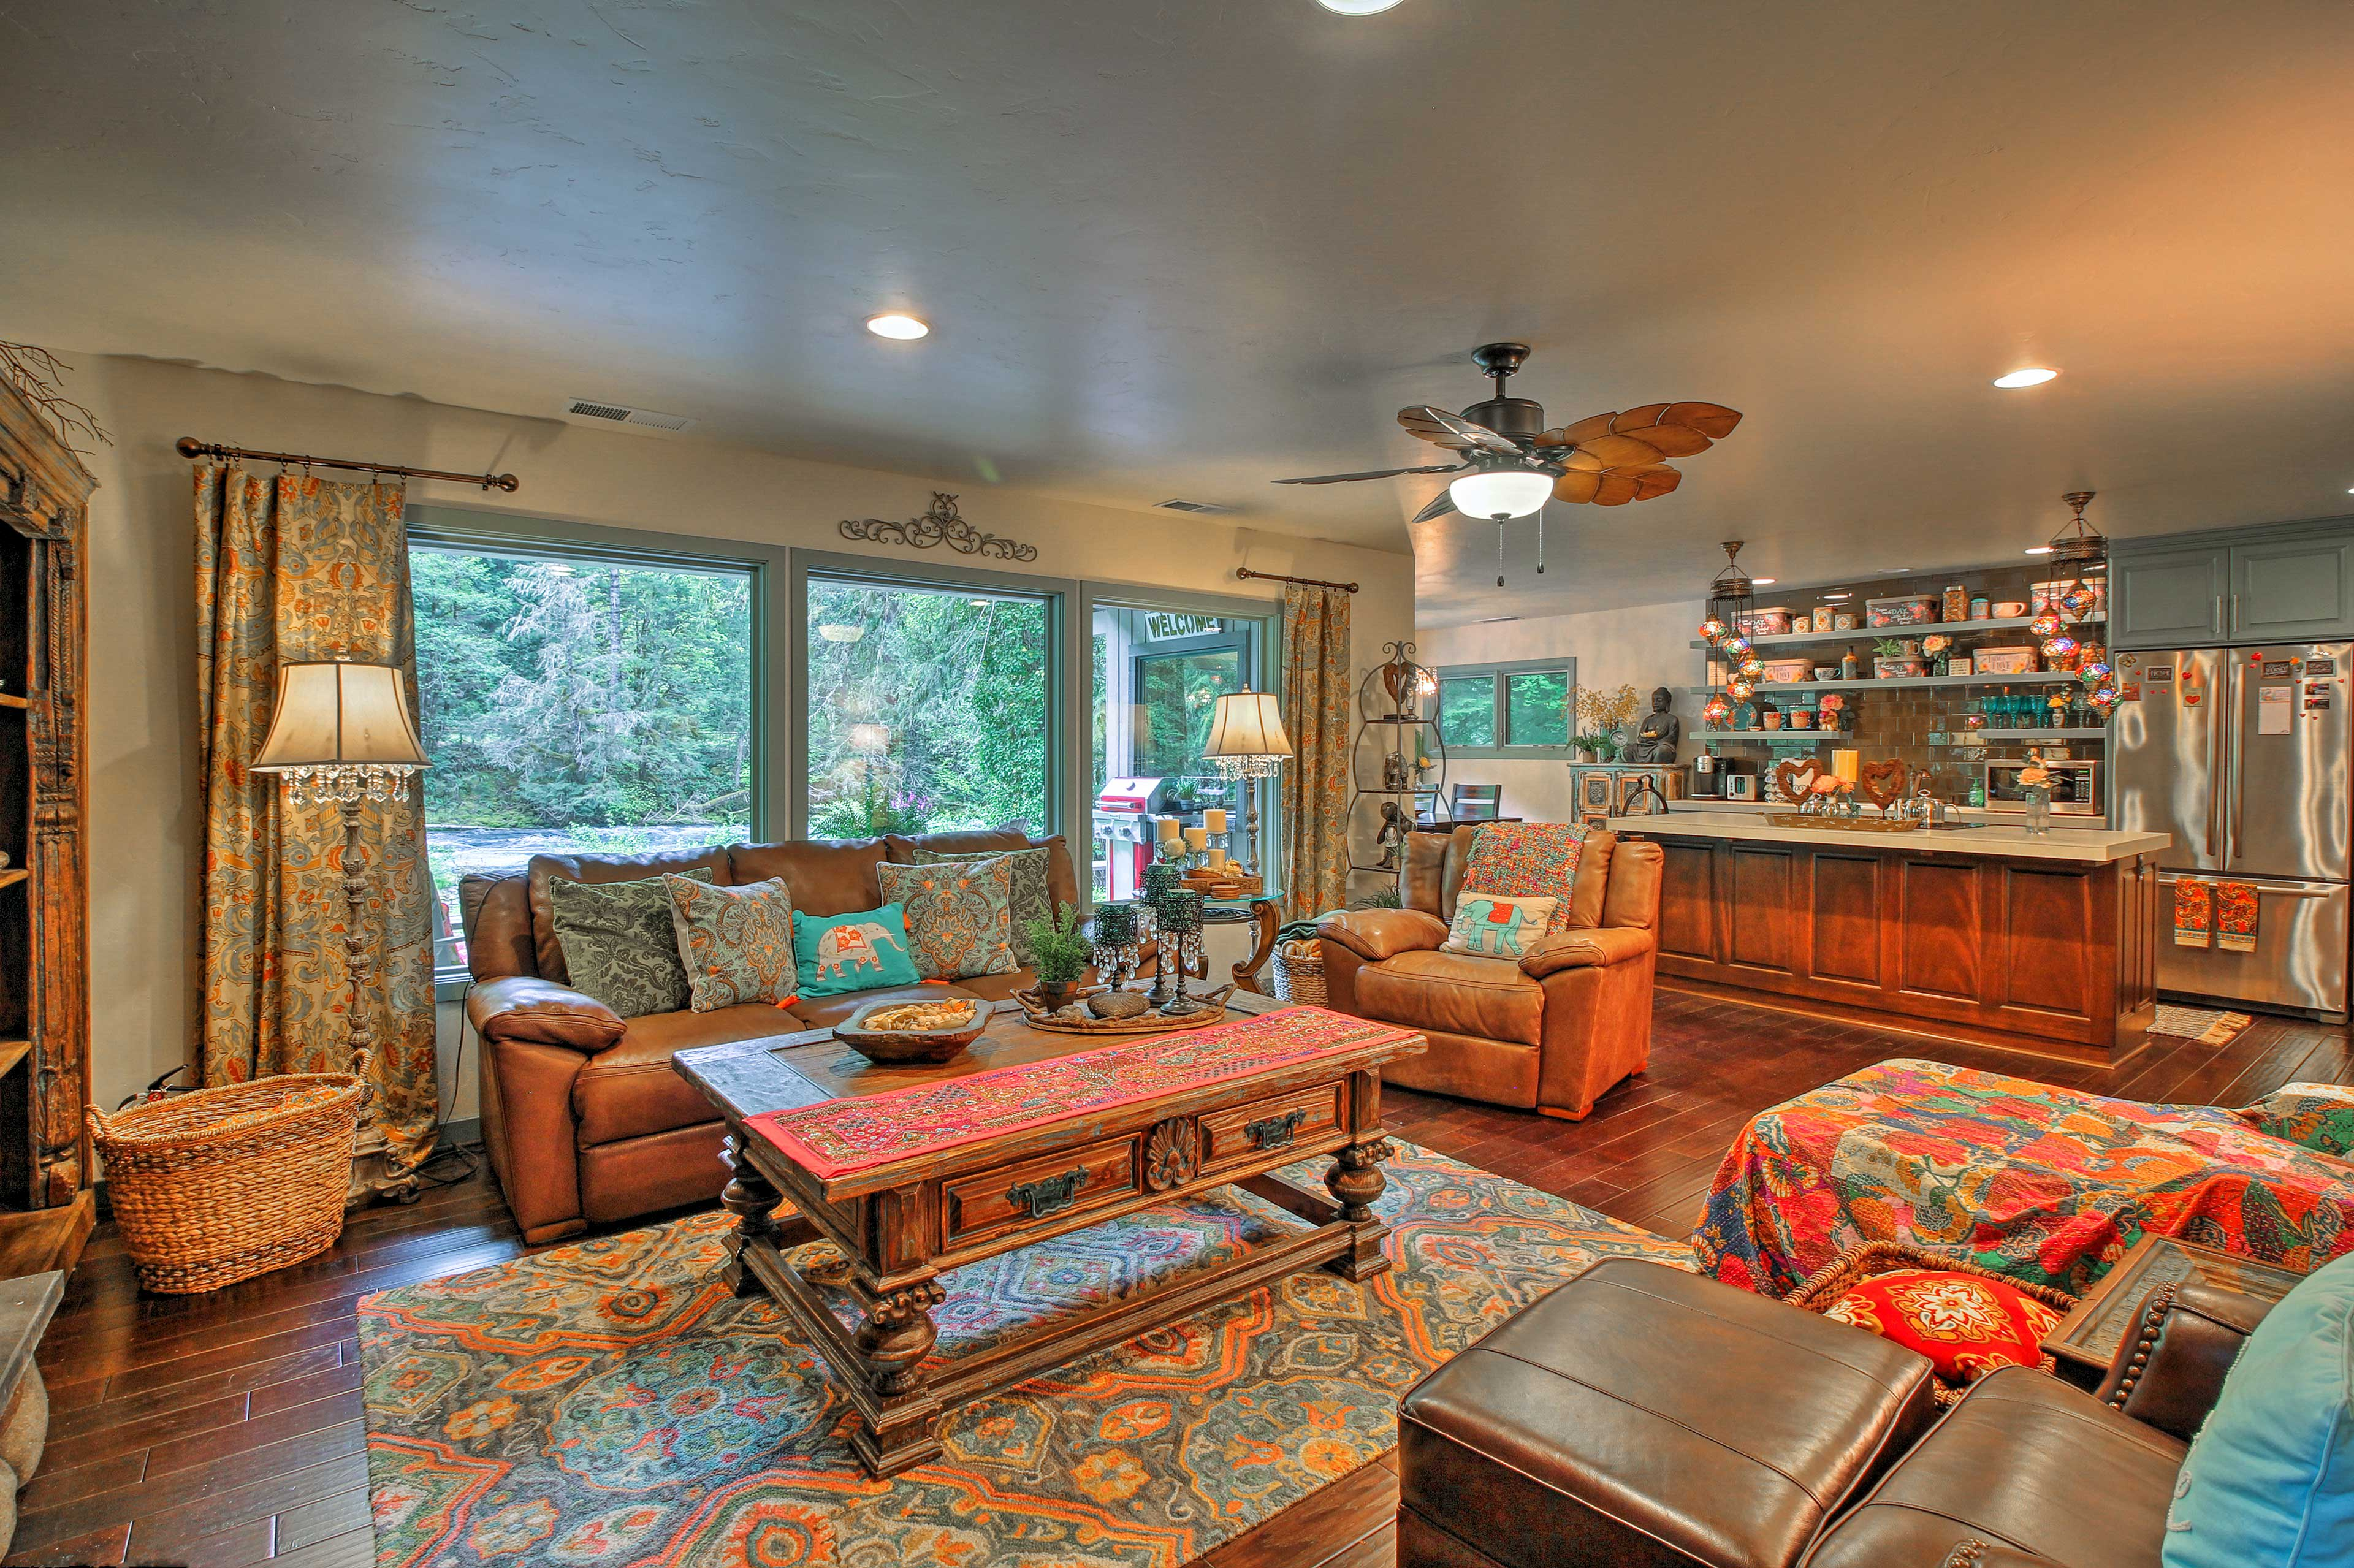 Plush furnishings and a wood burning fireplace go well with the view.